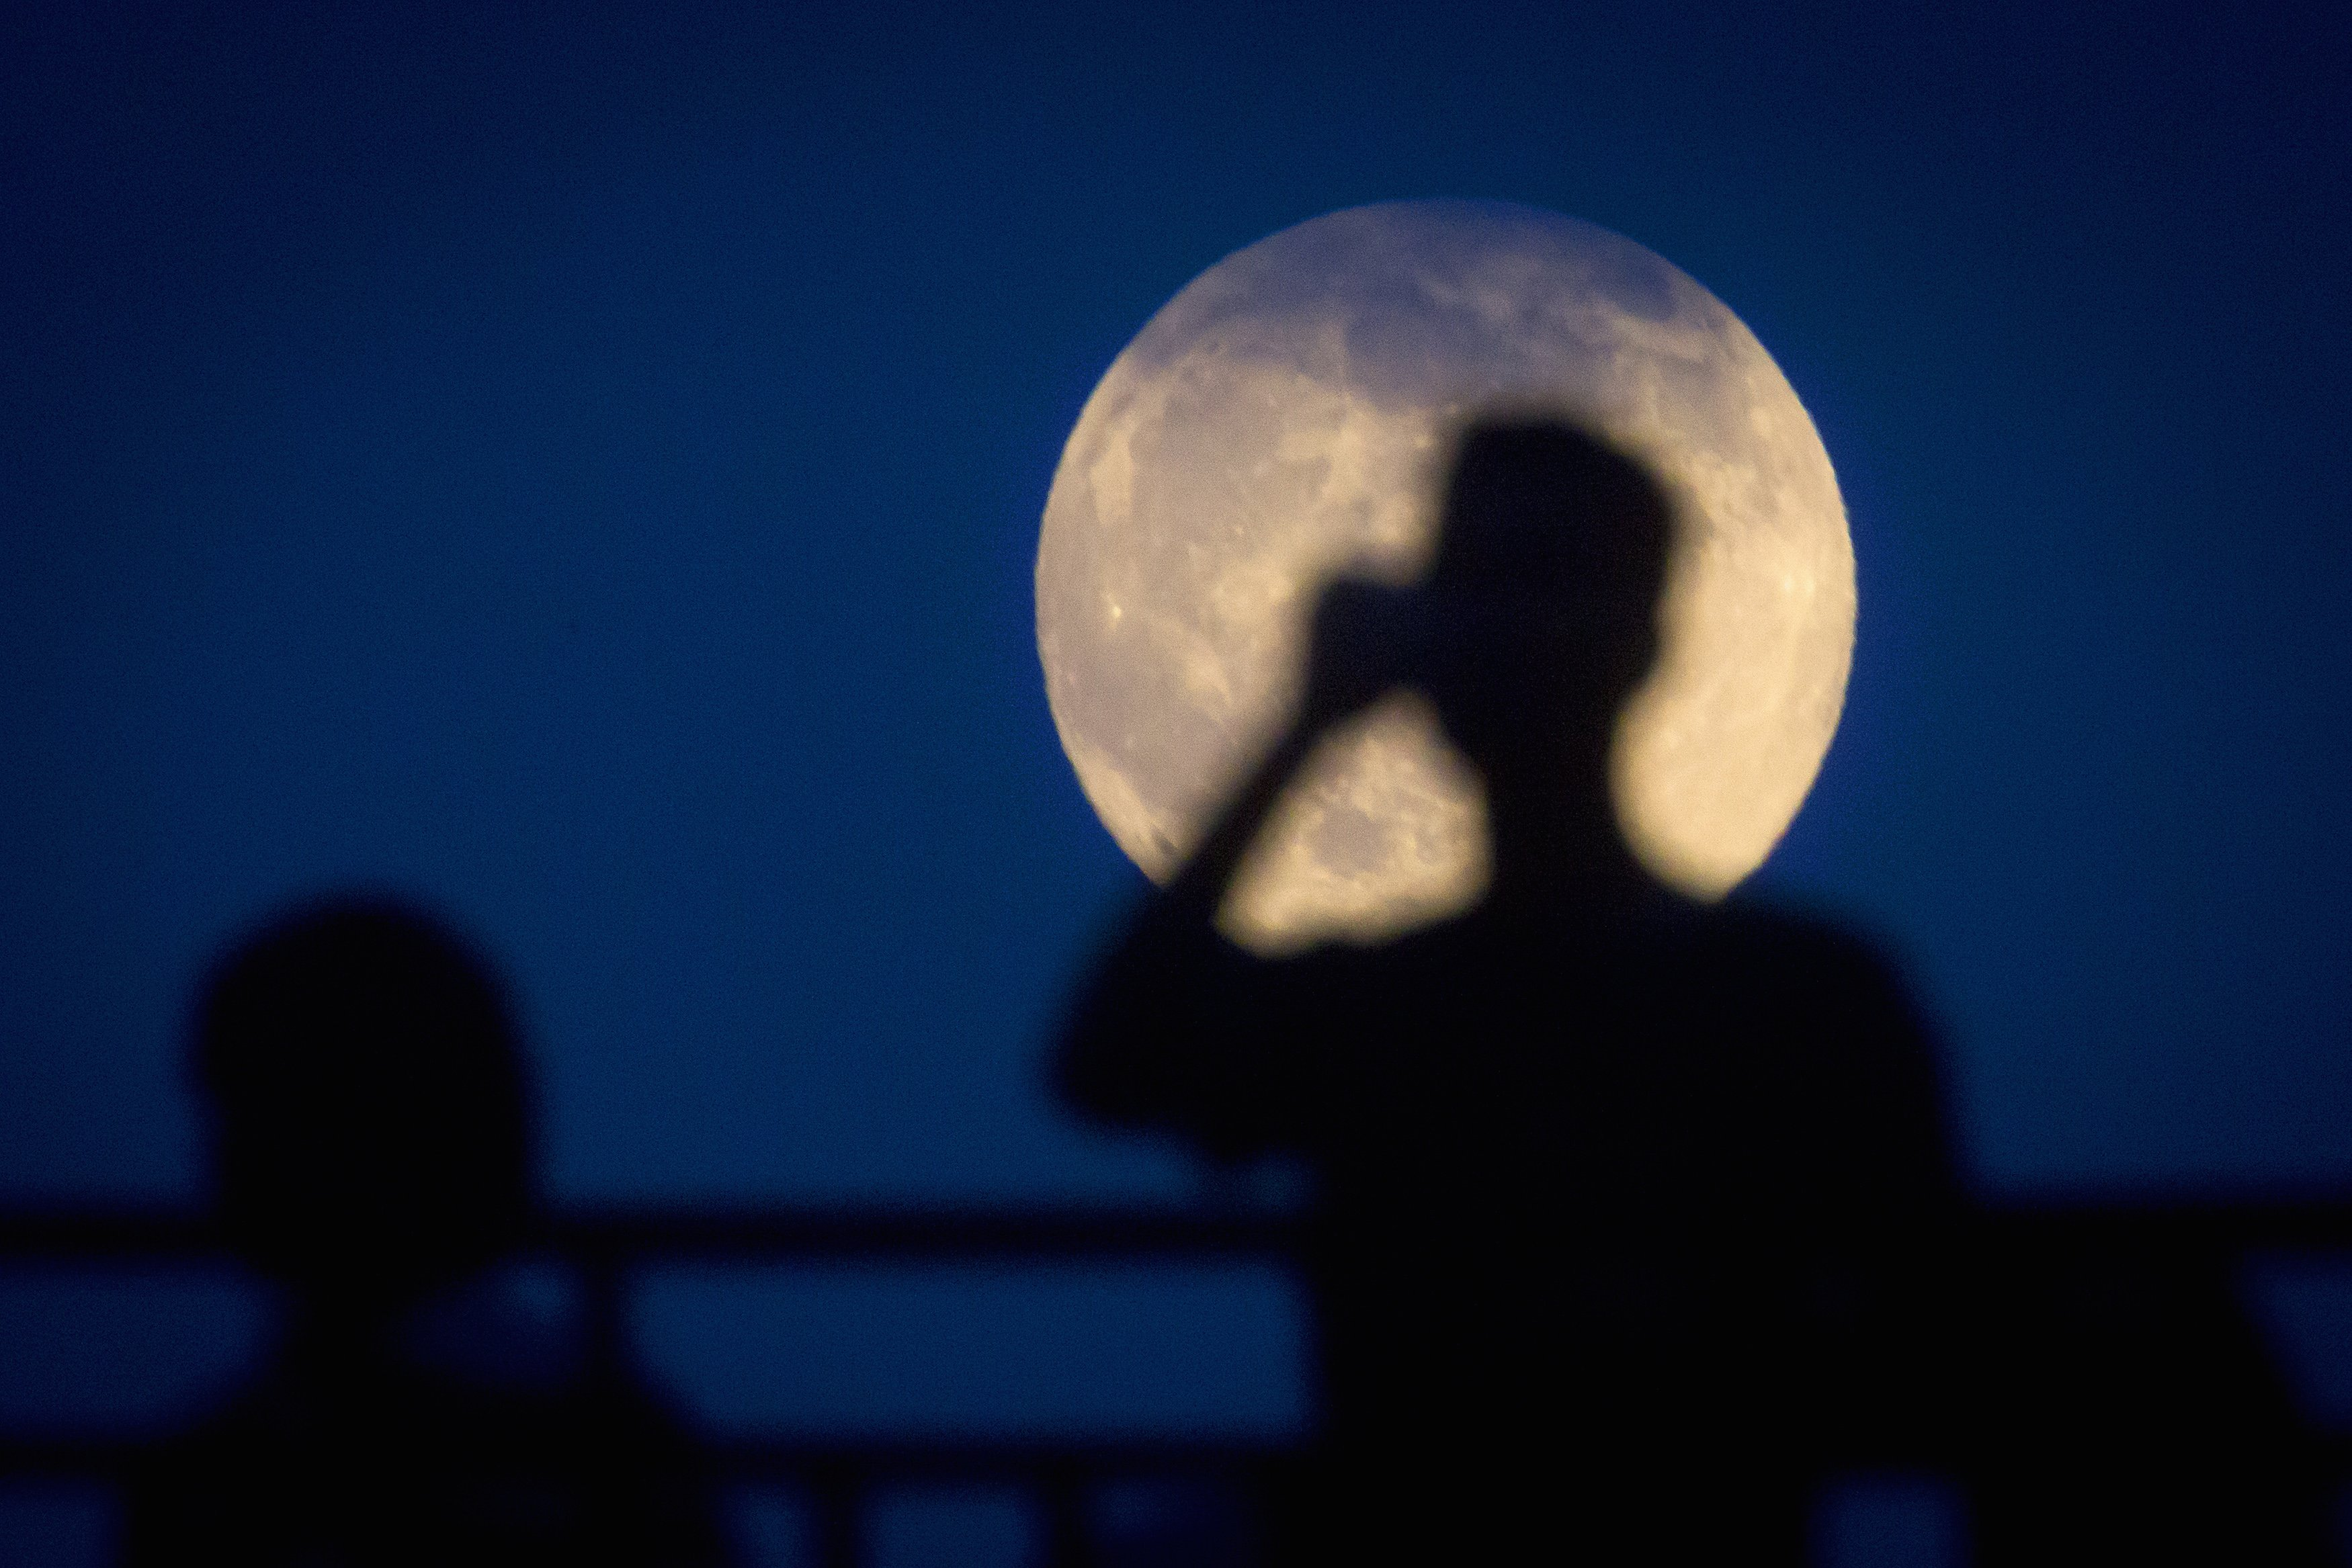 First 'supermoon' of 2014 makes debut over summer skies